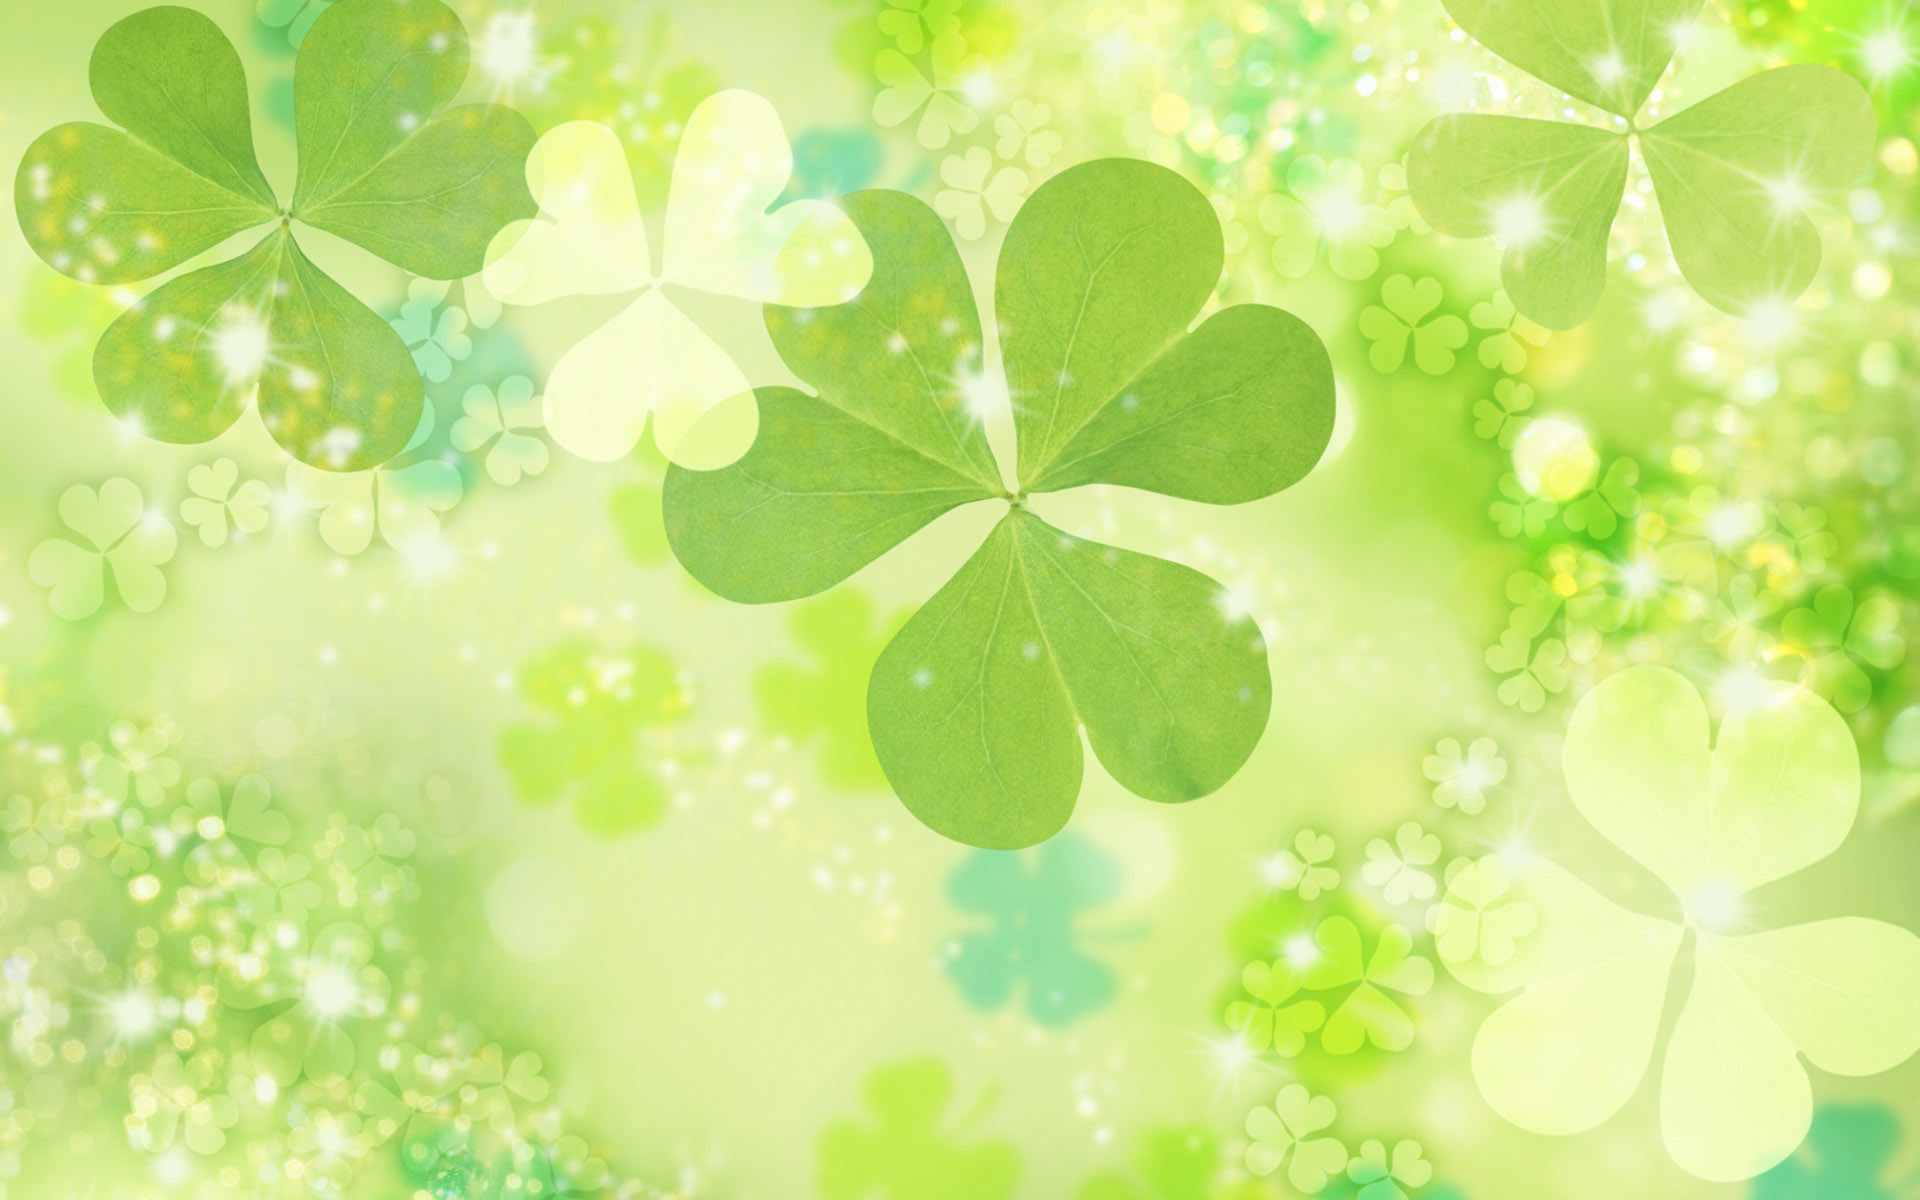 st patrick day wallpaper panda 1920x1200px wallpaper free